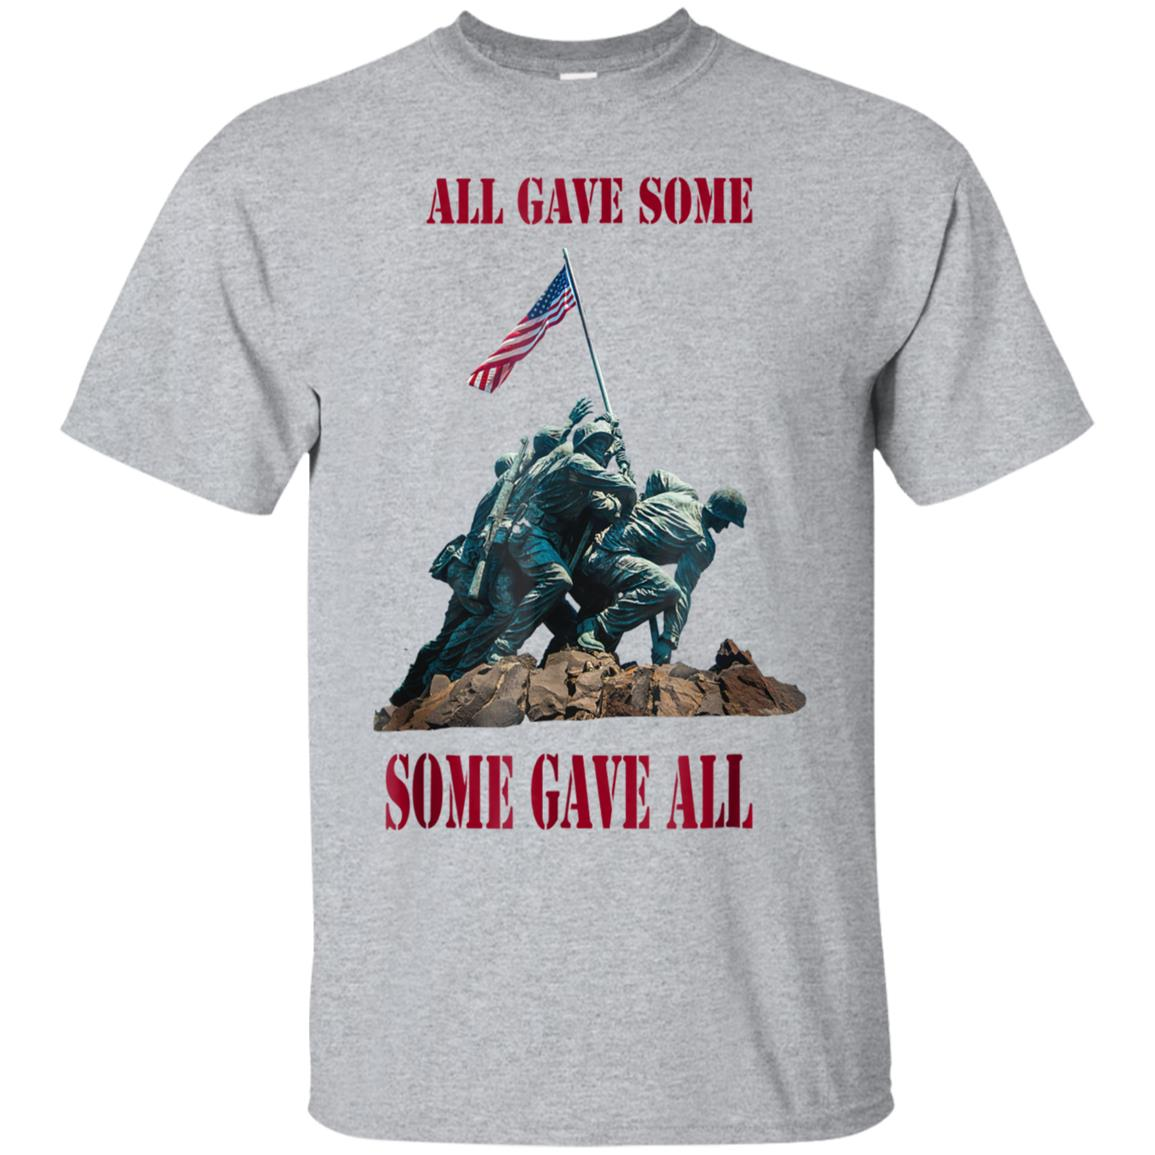 Patriotic Memorial Day T-shirt. Military Tee for Him or Her 99promocode